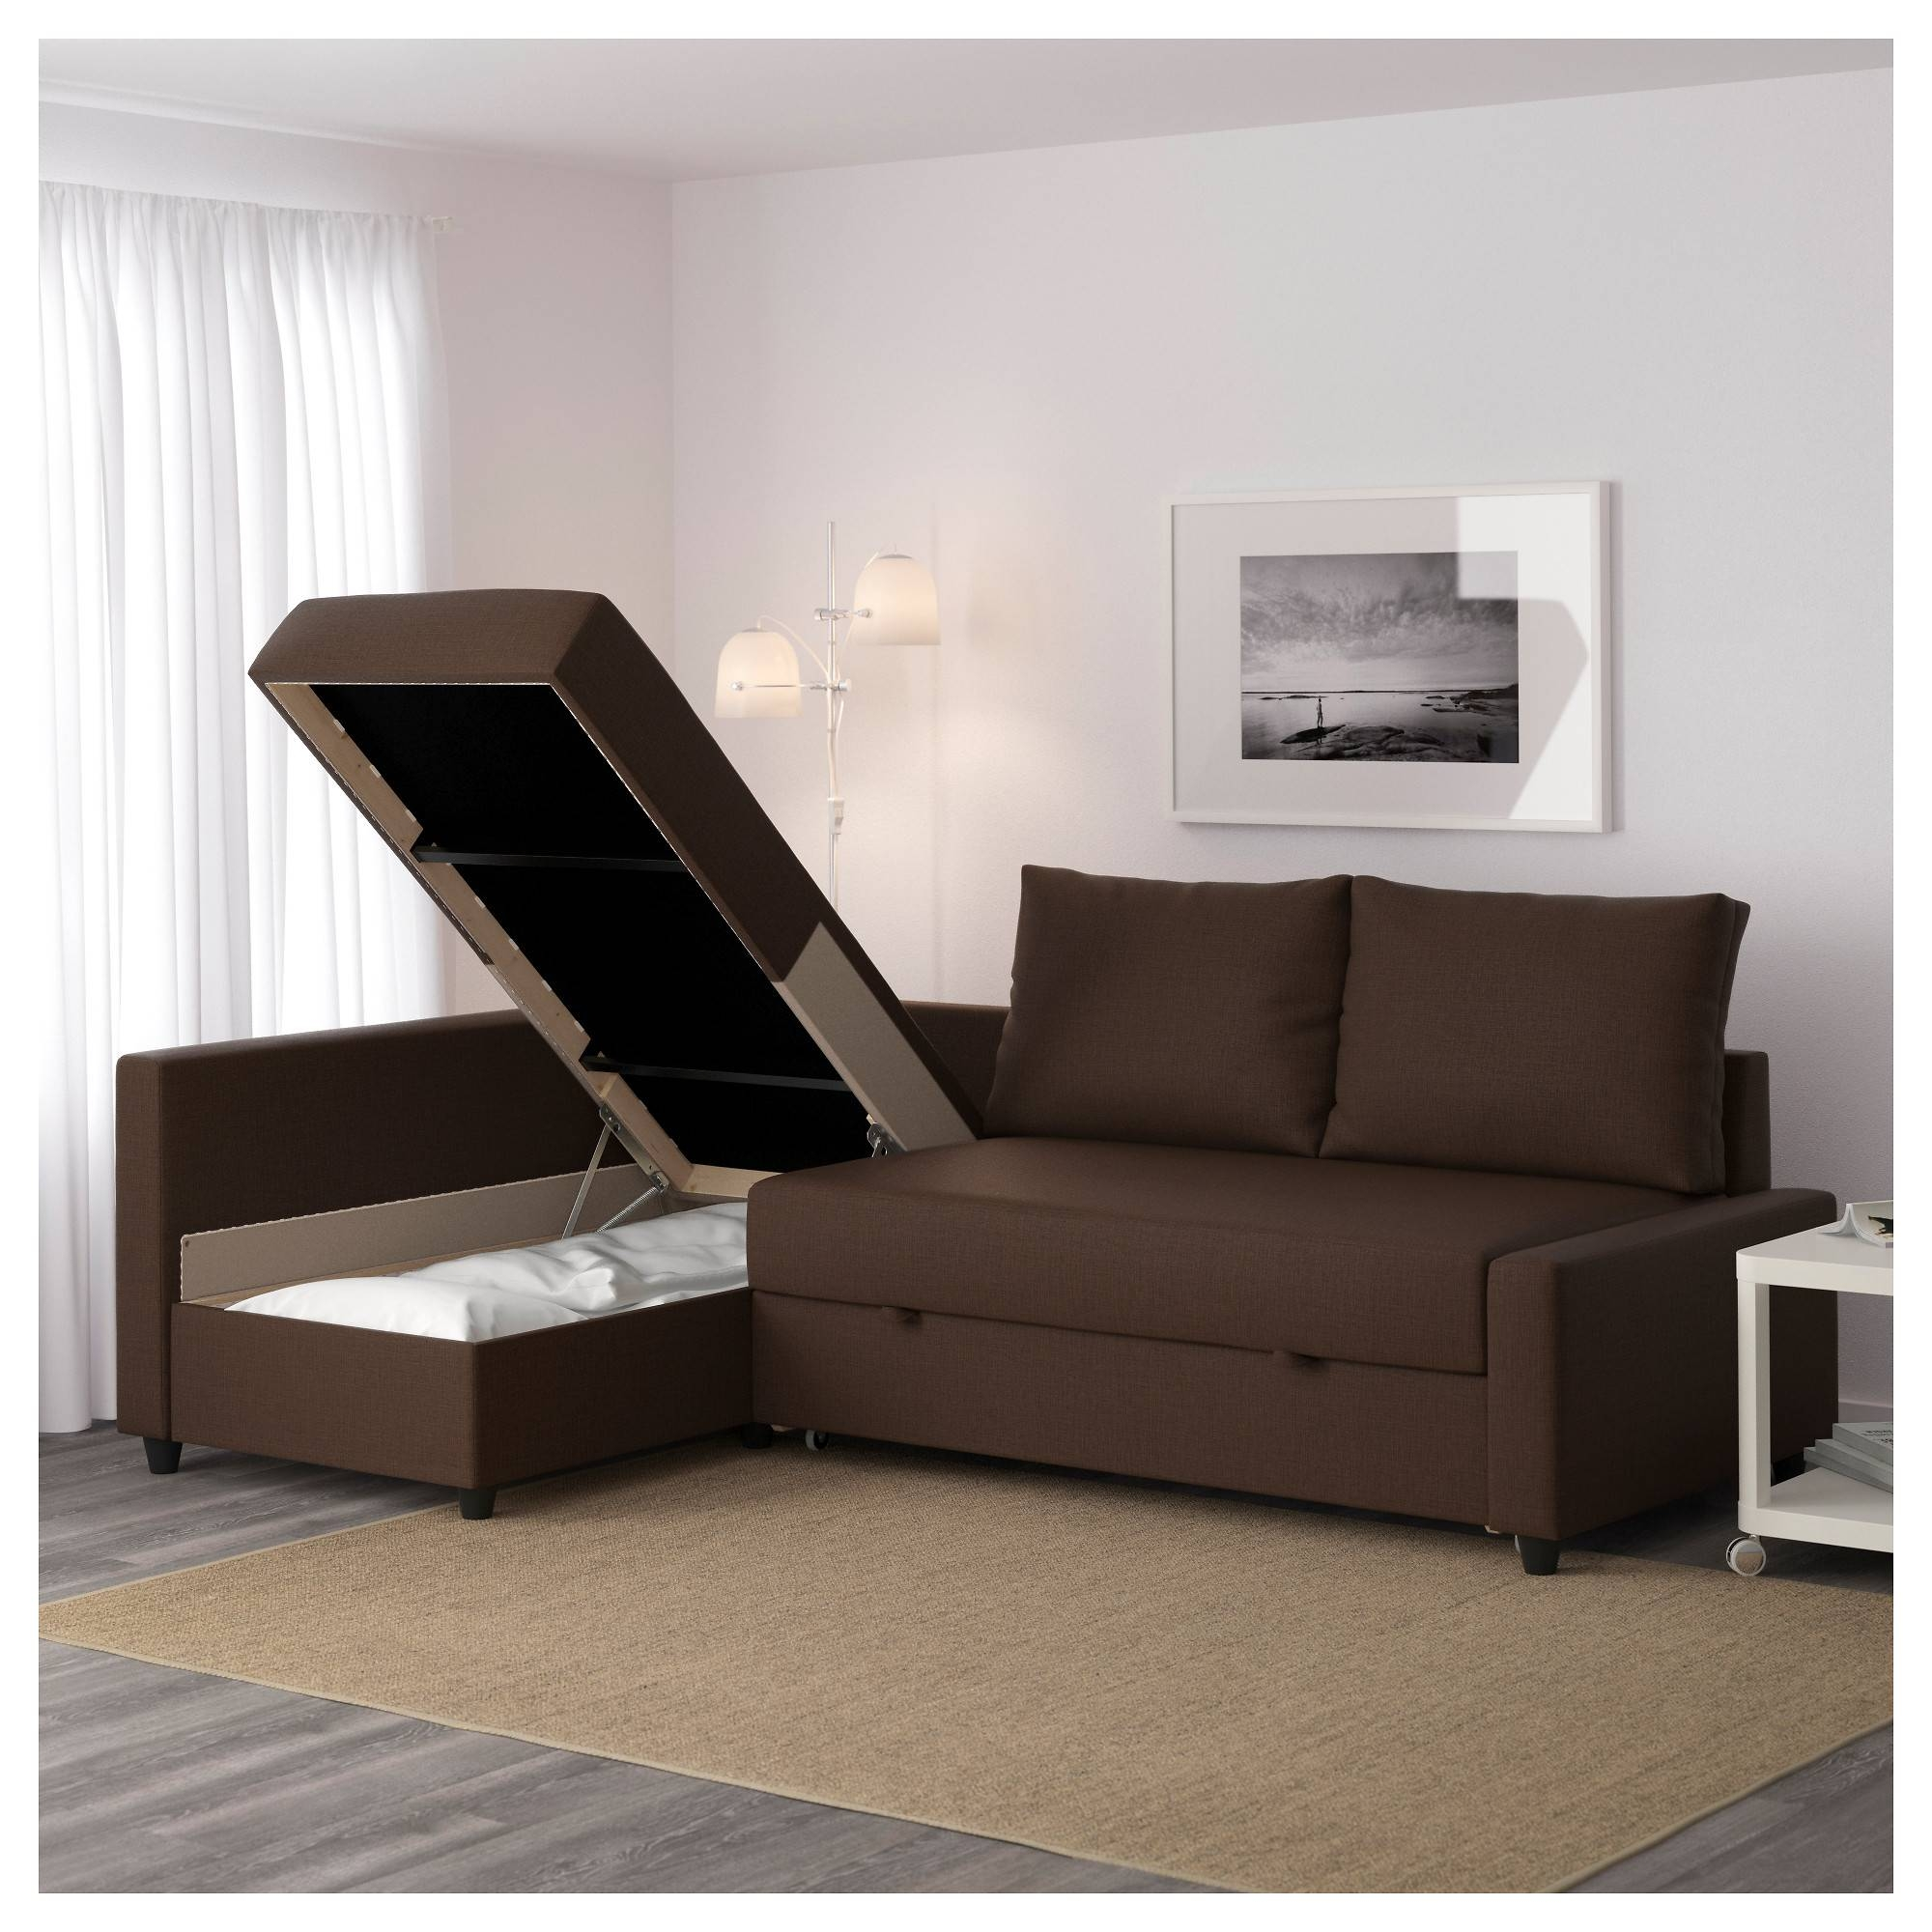 Furniture & Rug: Extraordinary Moheda Sofa Bed For Home Furniture pertaining to Corner Sofa Bed Sale (Image 6 of 30)